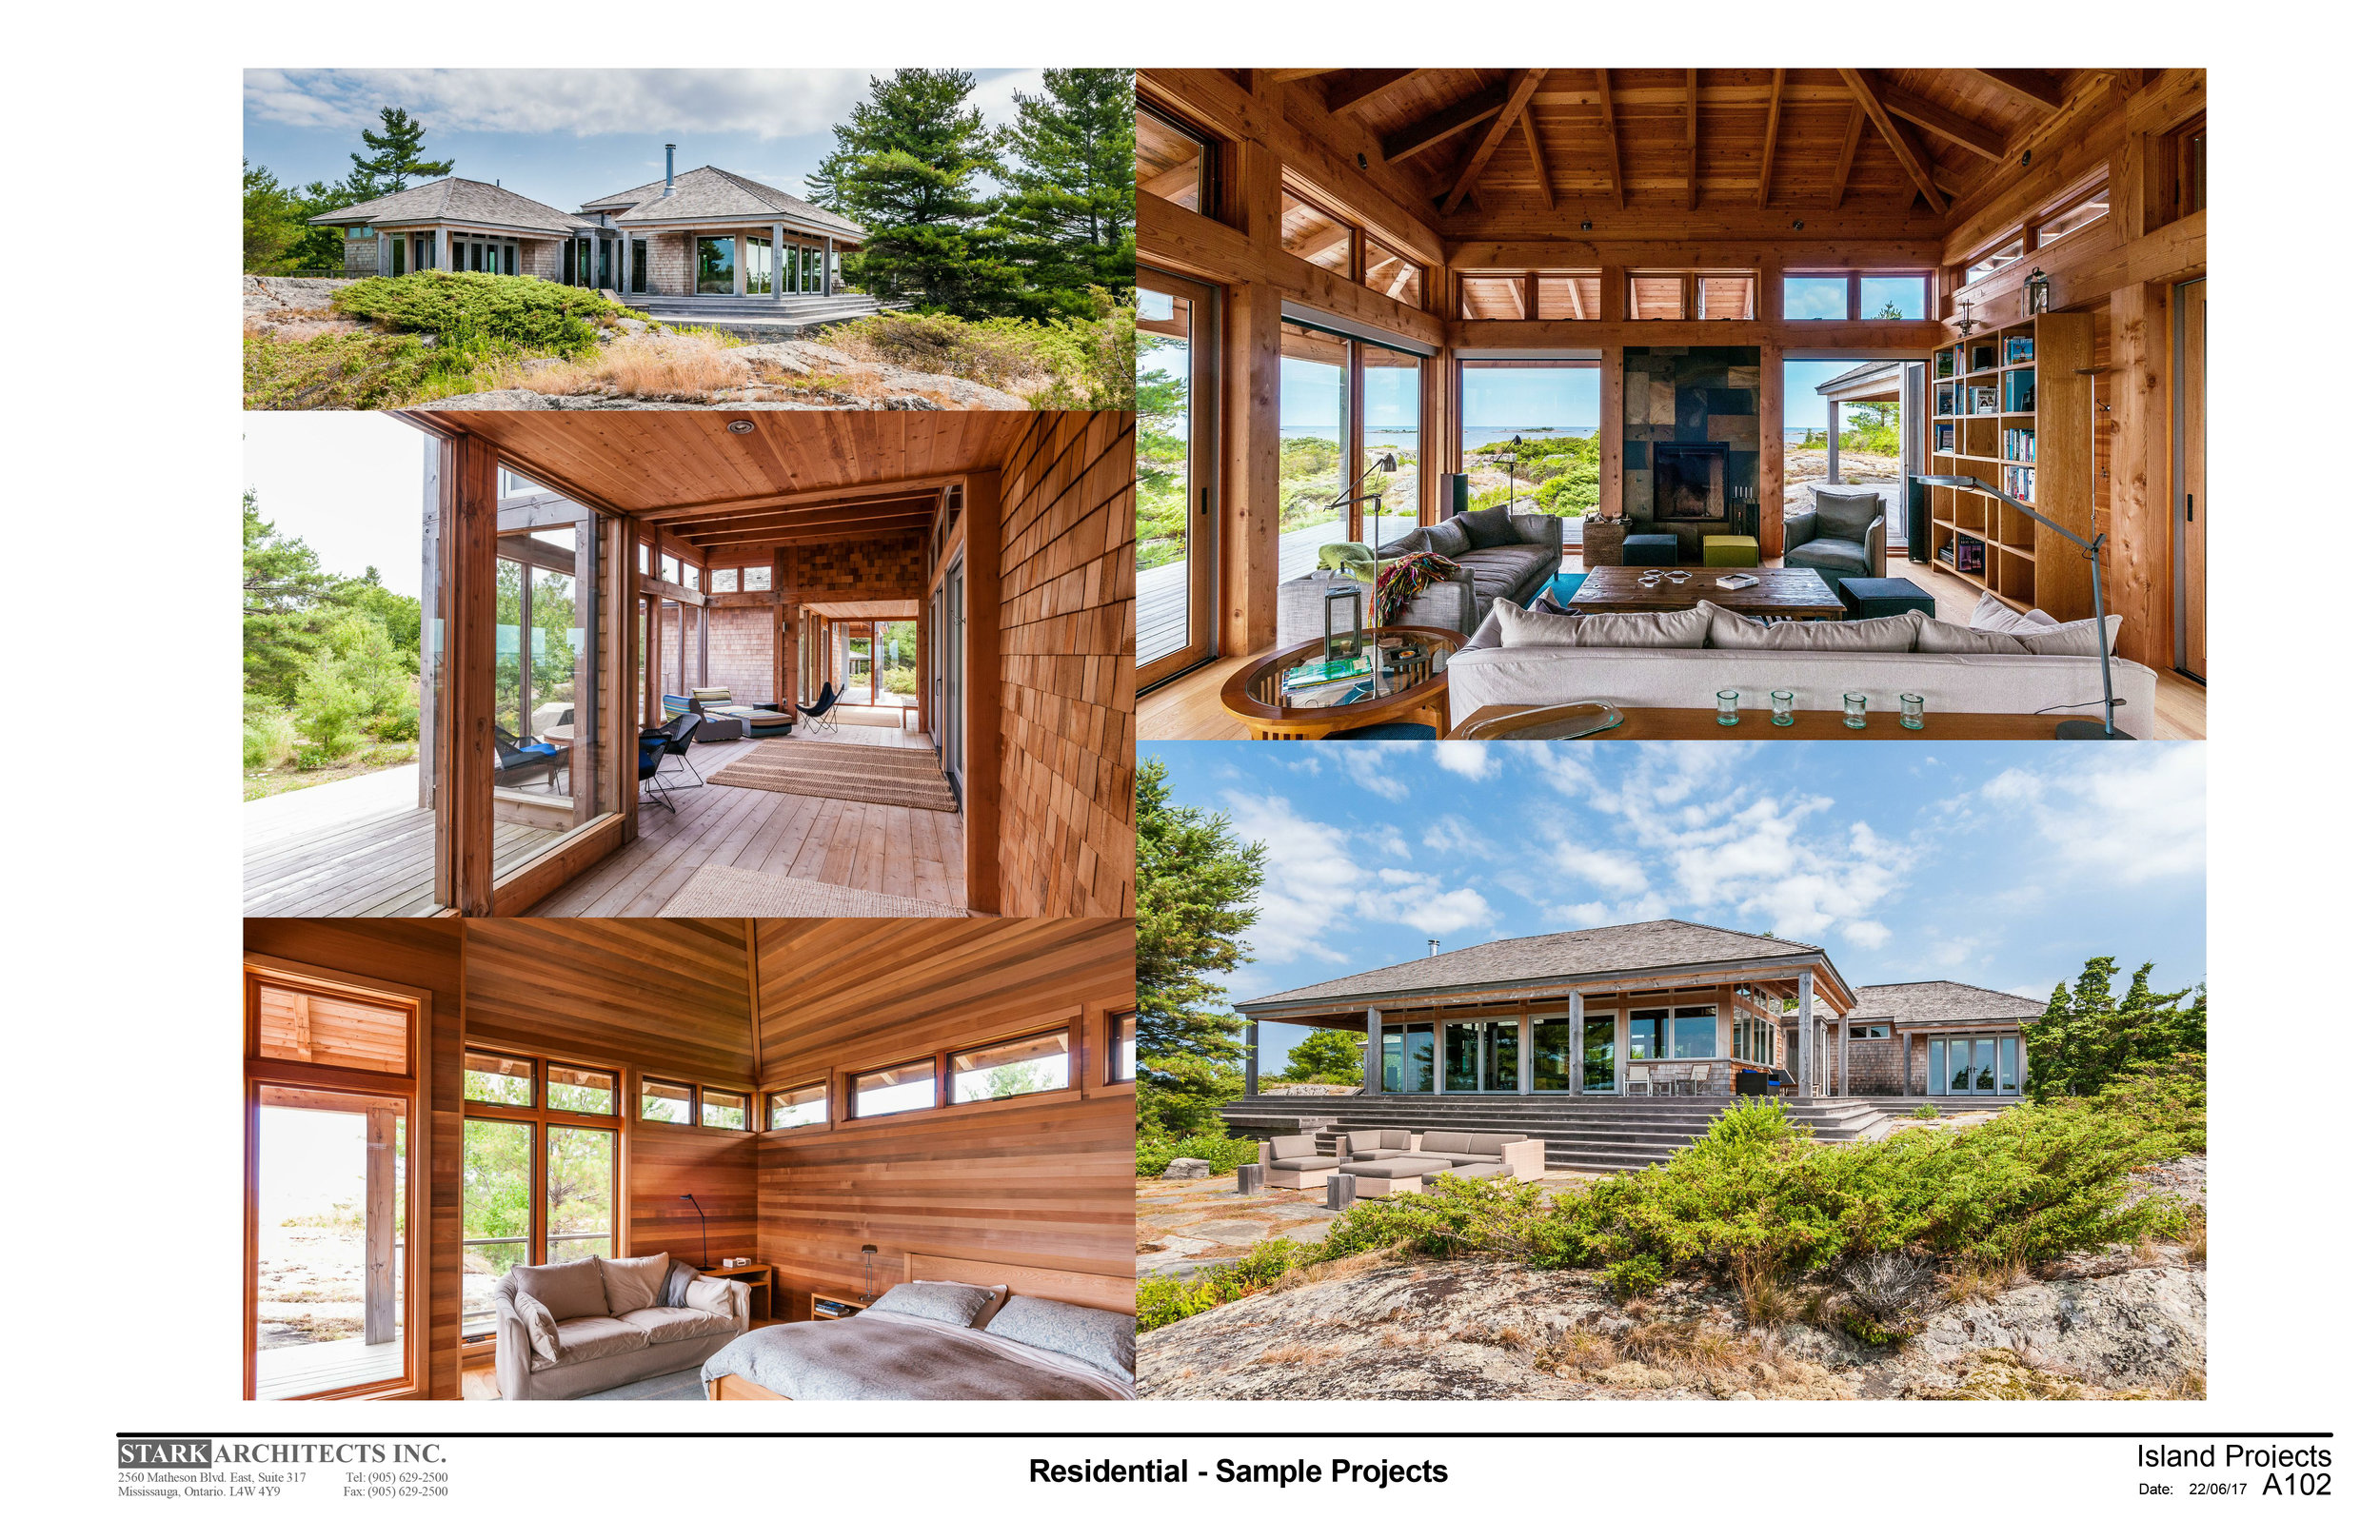 STARK ARCHITECTS INC - SAMPLE PROJECTS - RESIDENTIAL - 22-06-17 - A102.jpg